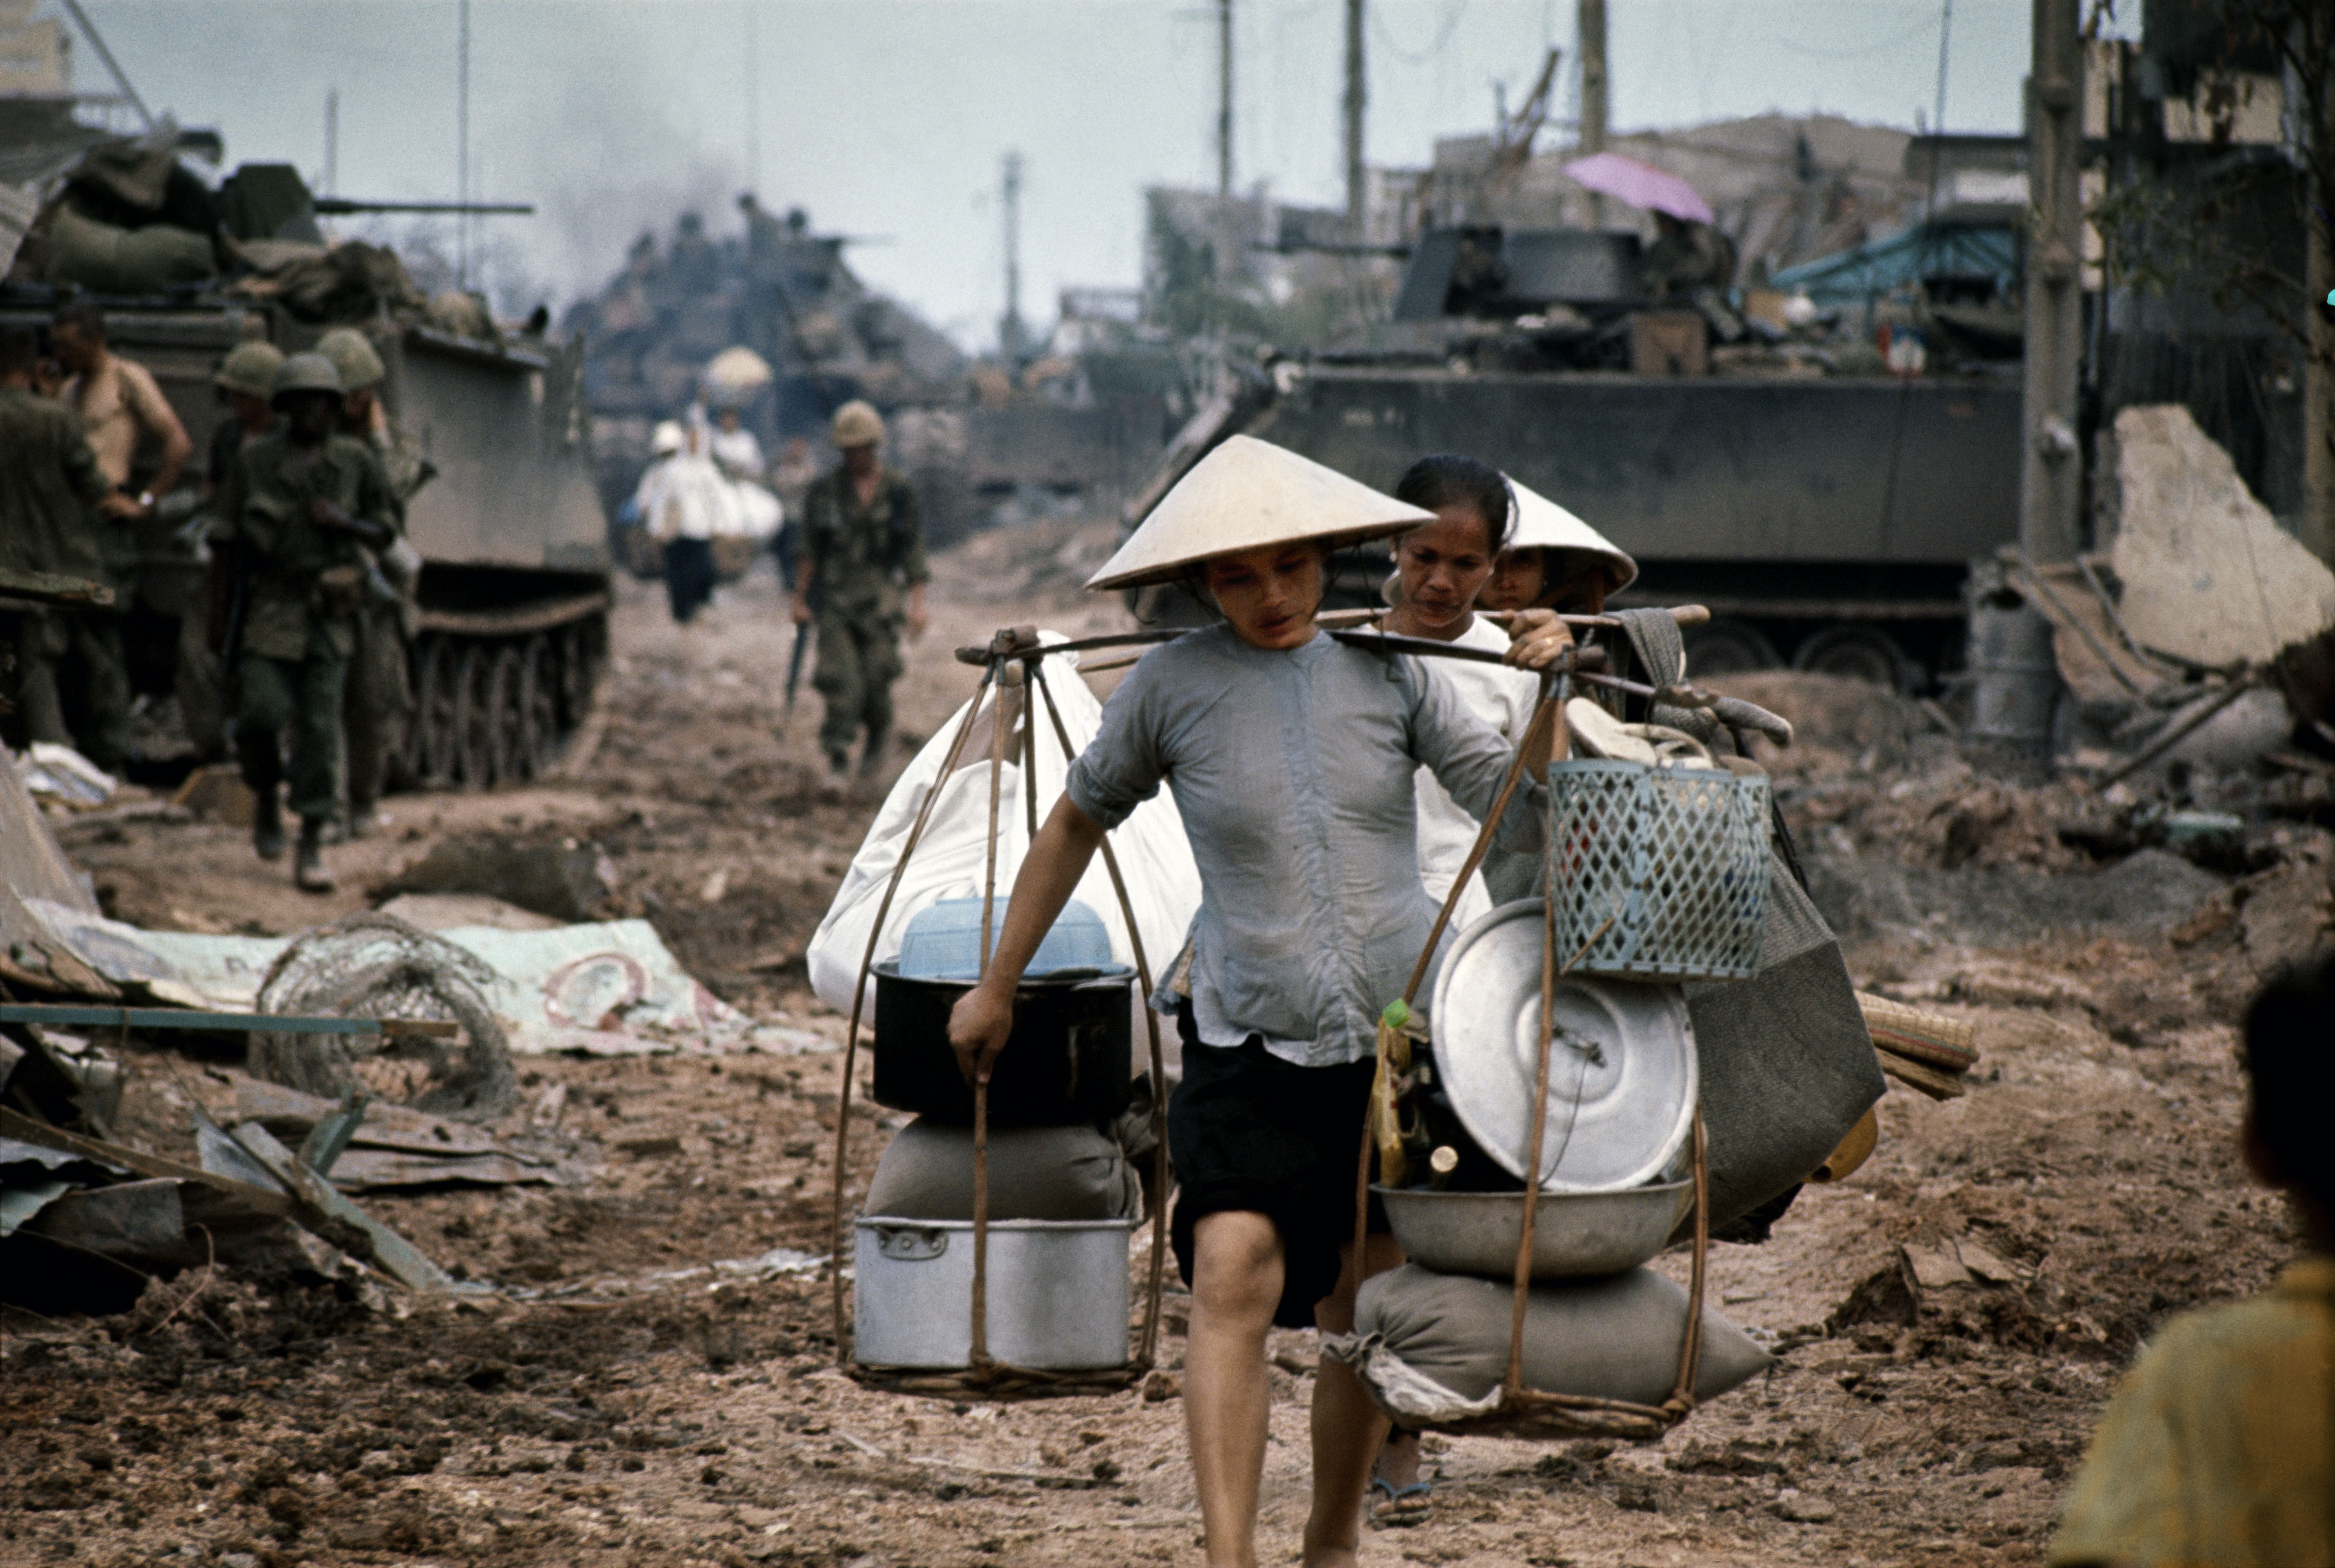 Philip Jones Griffiths, Refugees in Saigon during the fighting in May. Saigon. Vietnam. 1968 @ Magnum Photos